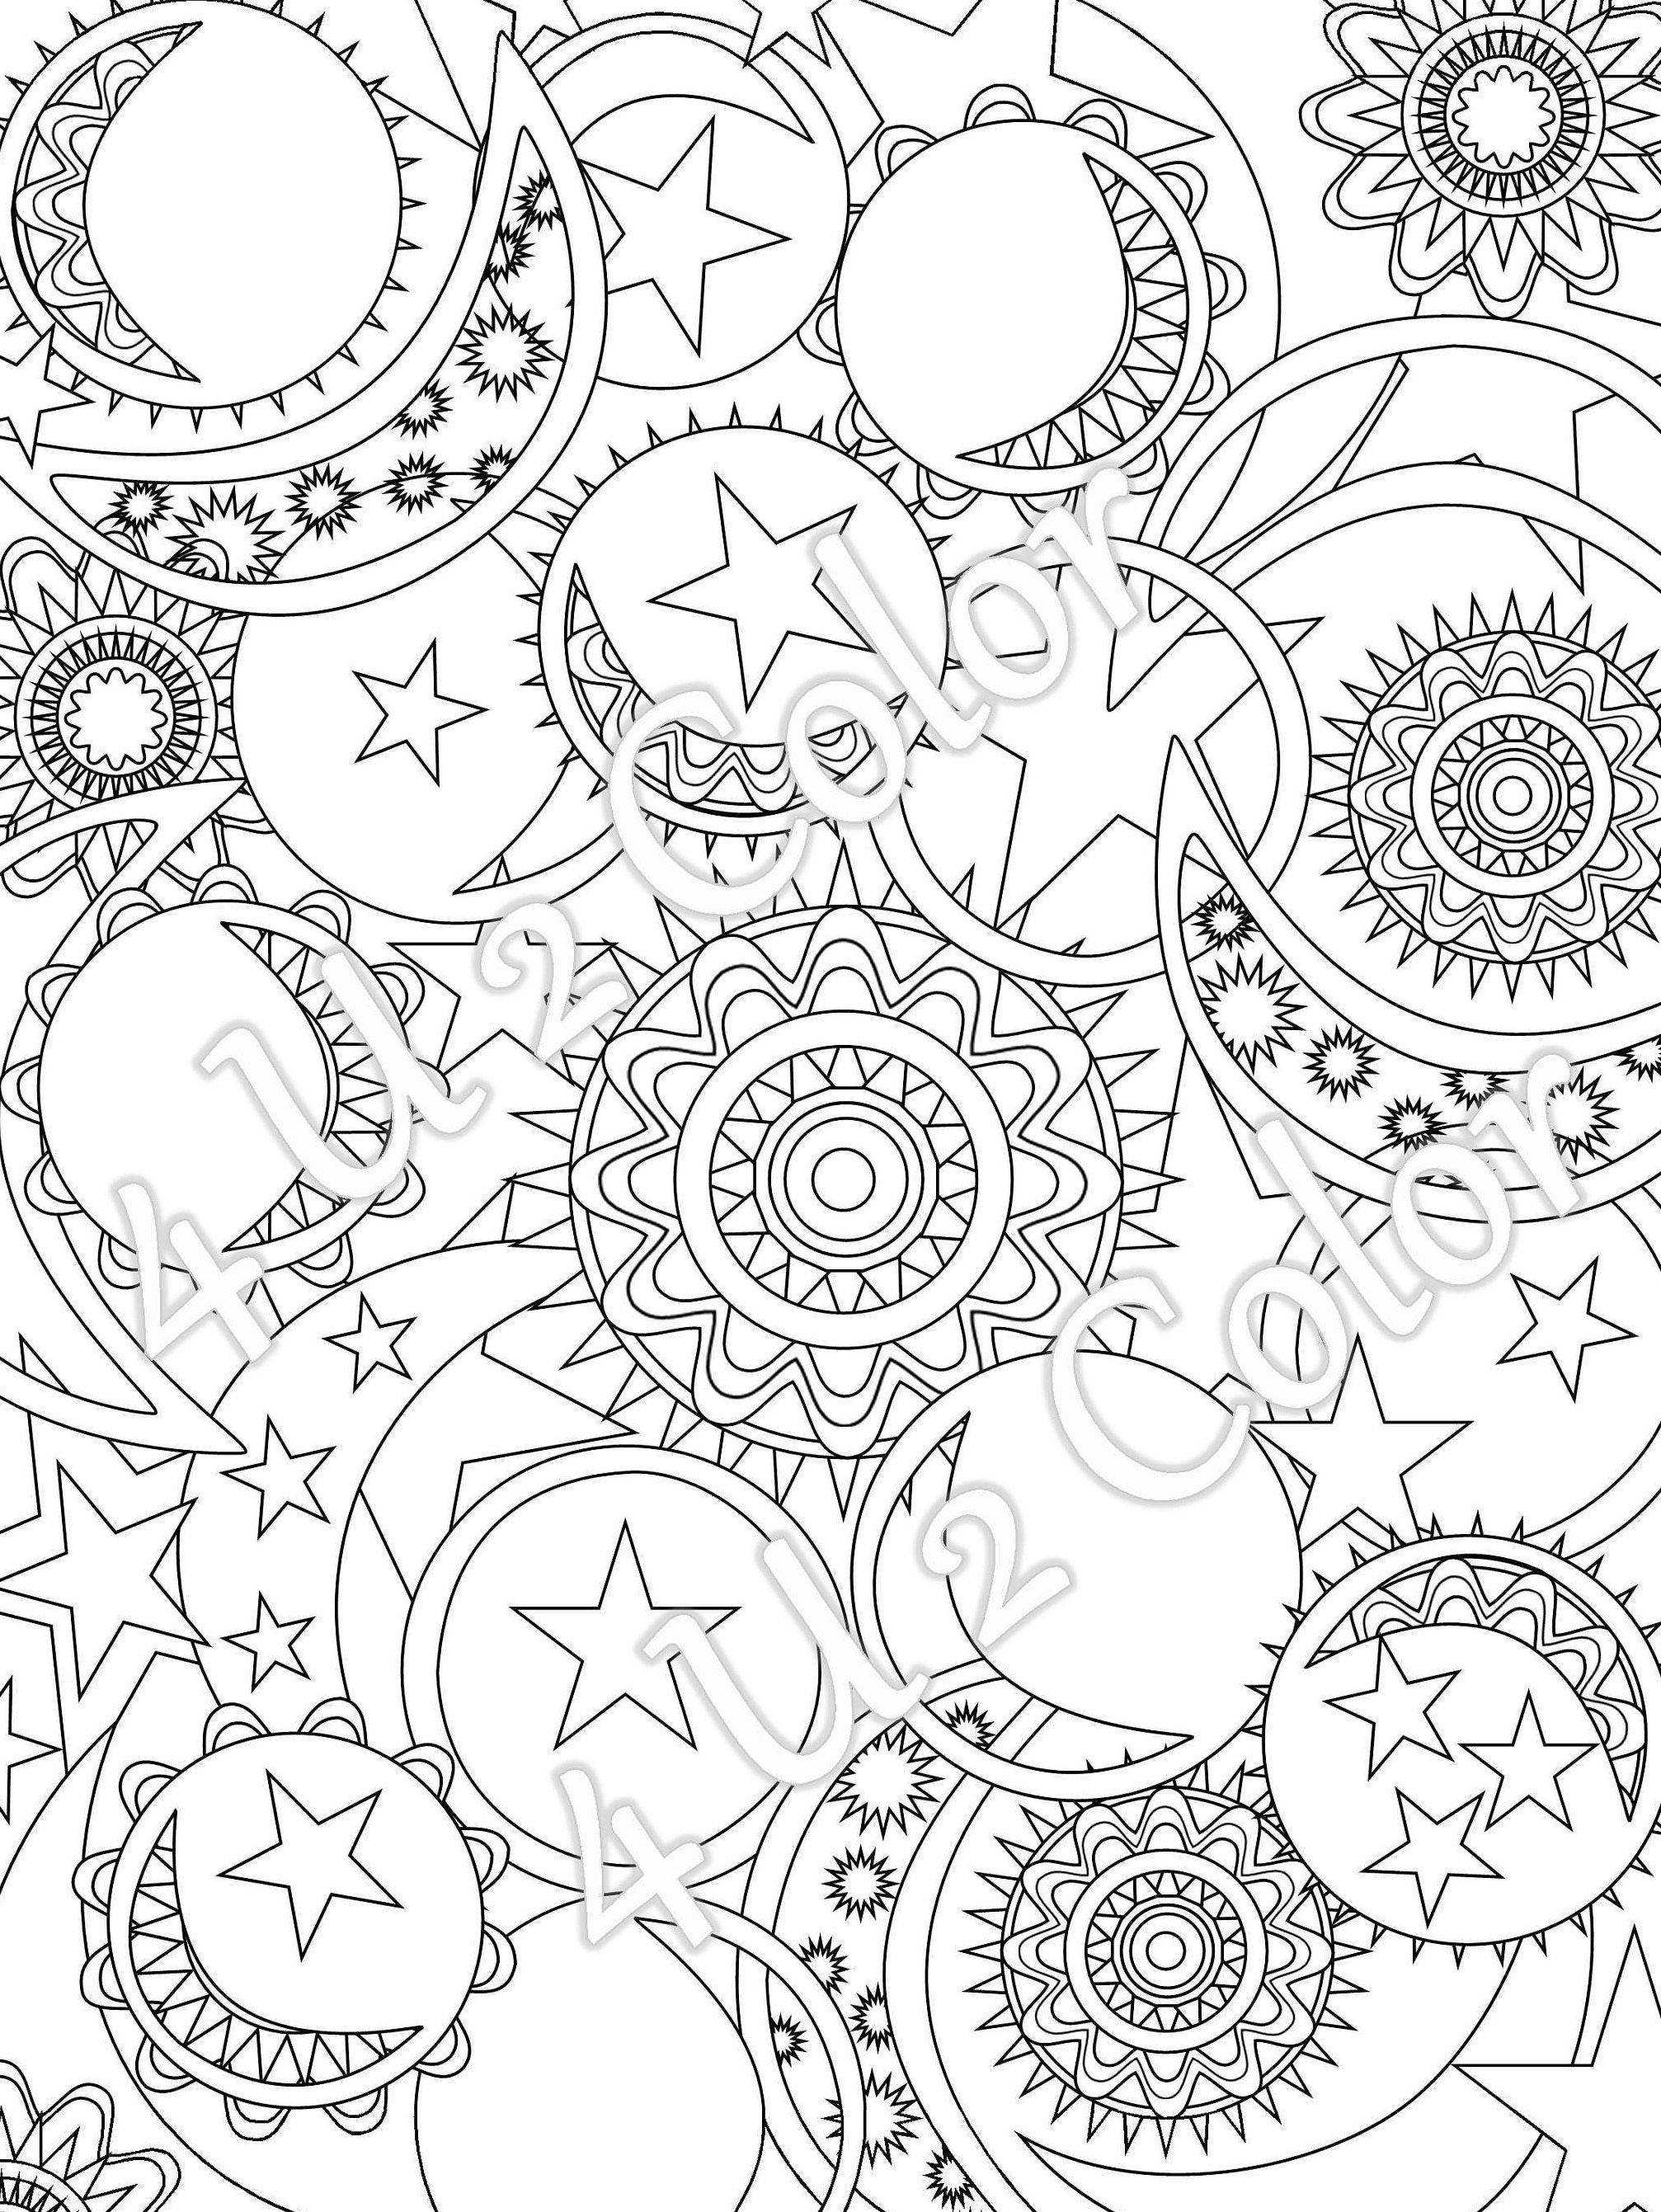 Sun - Moon - Stars - #1, coloring page, sun, moon & stars coloring ...